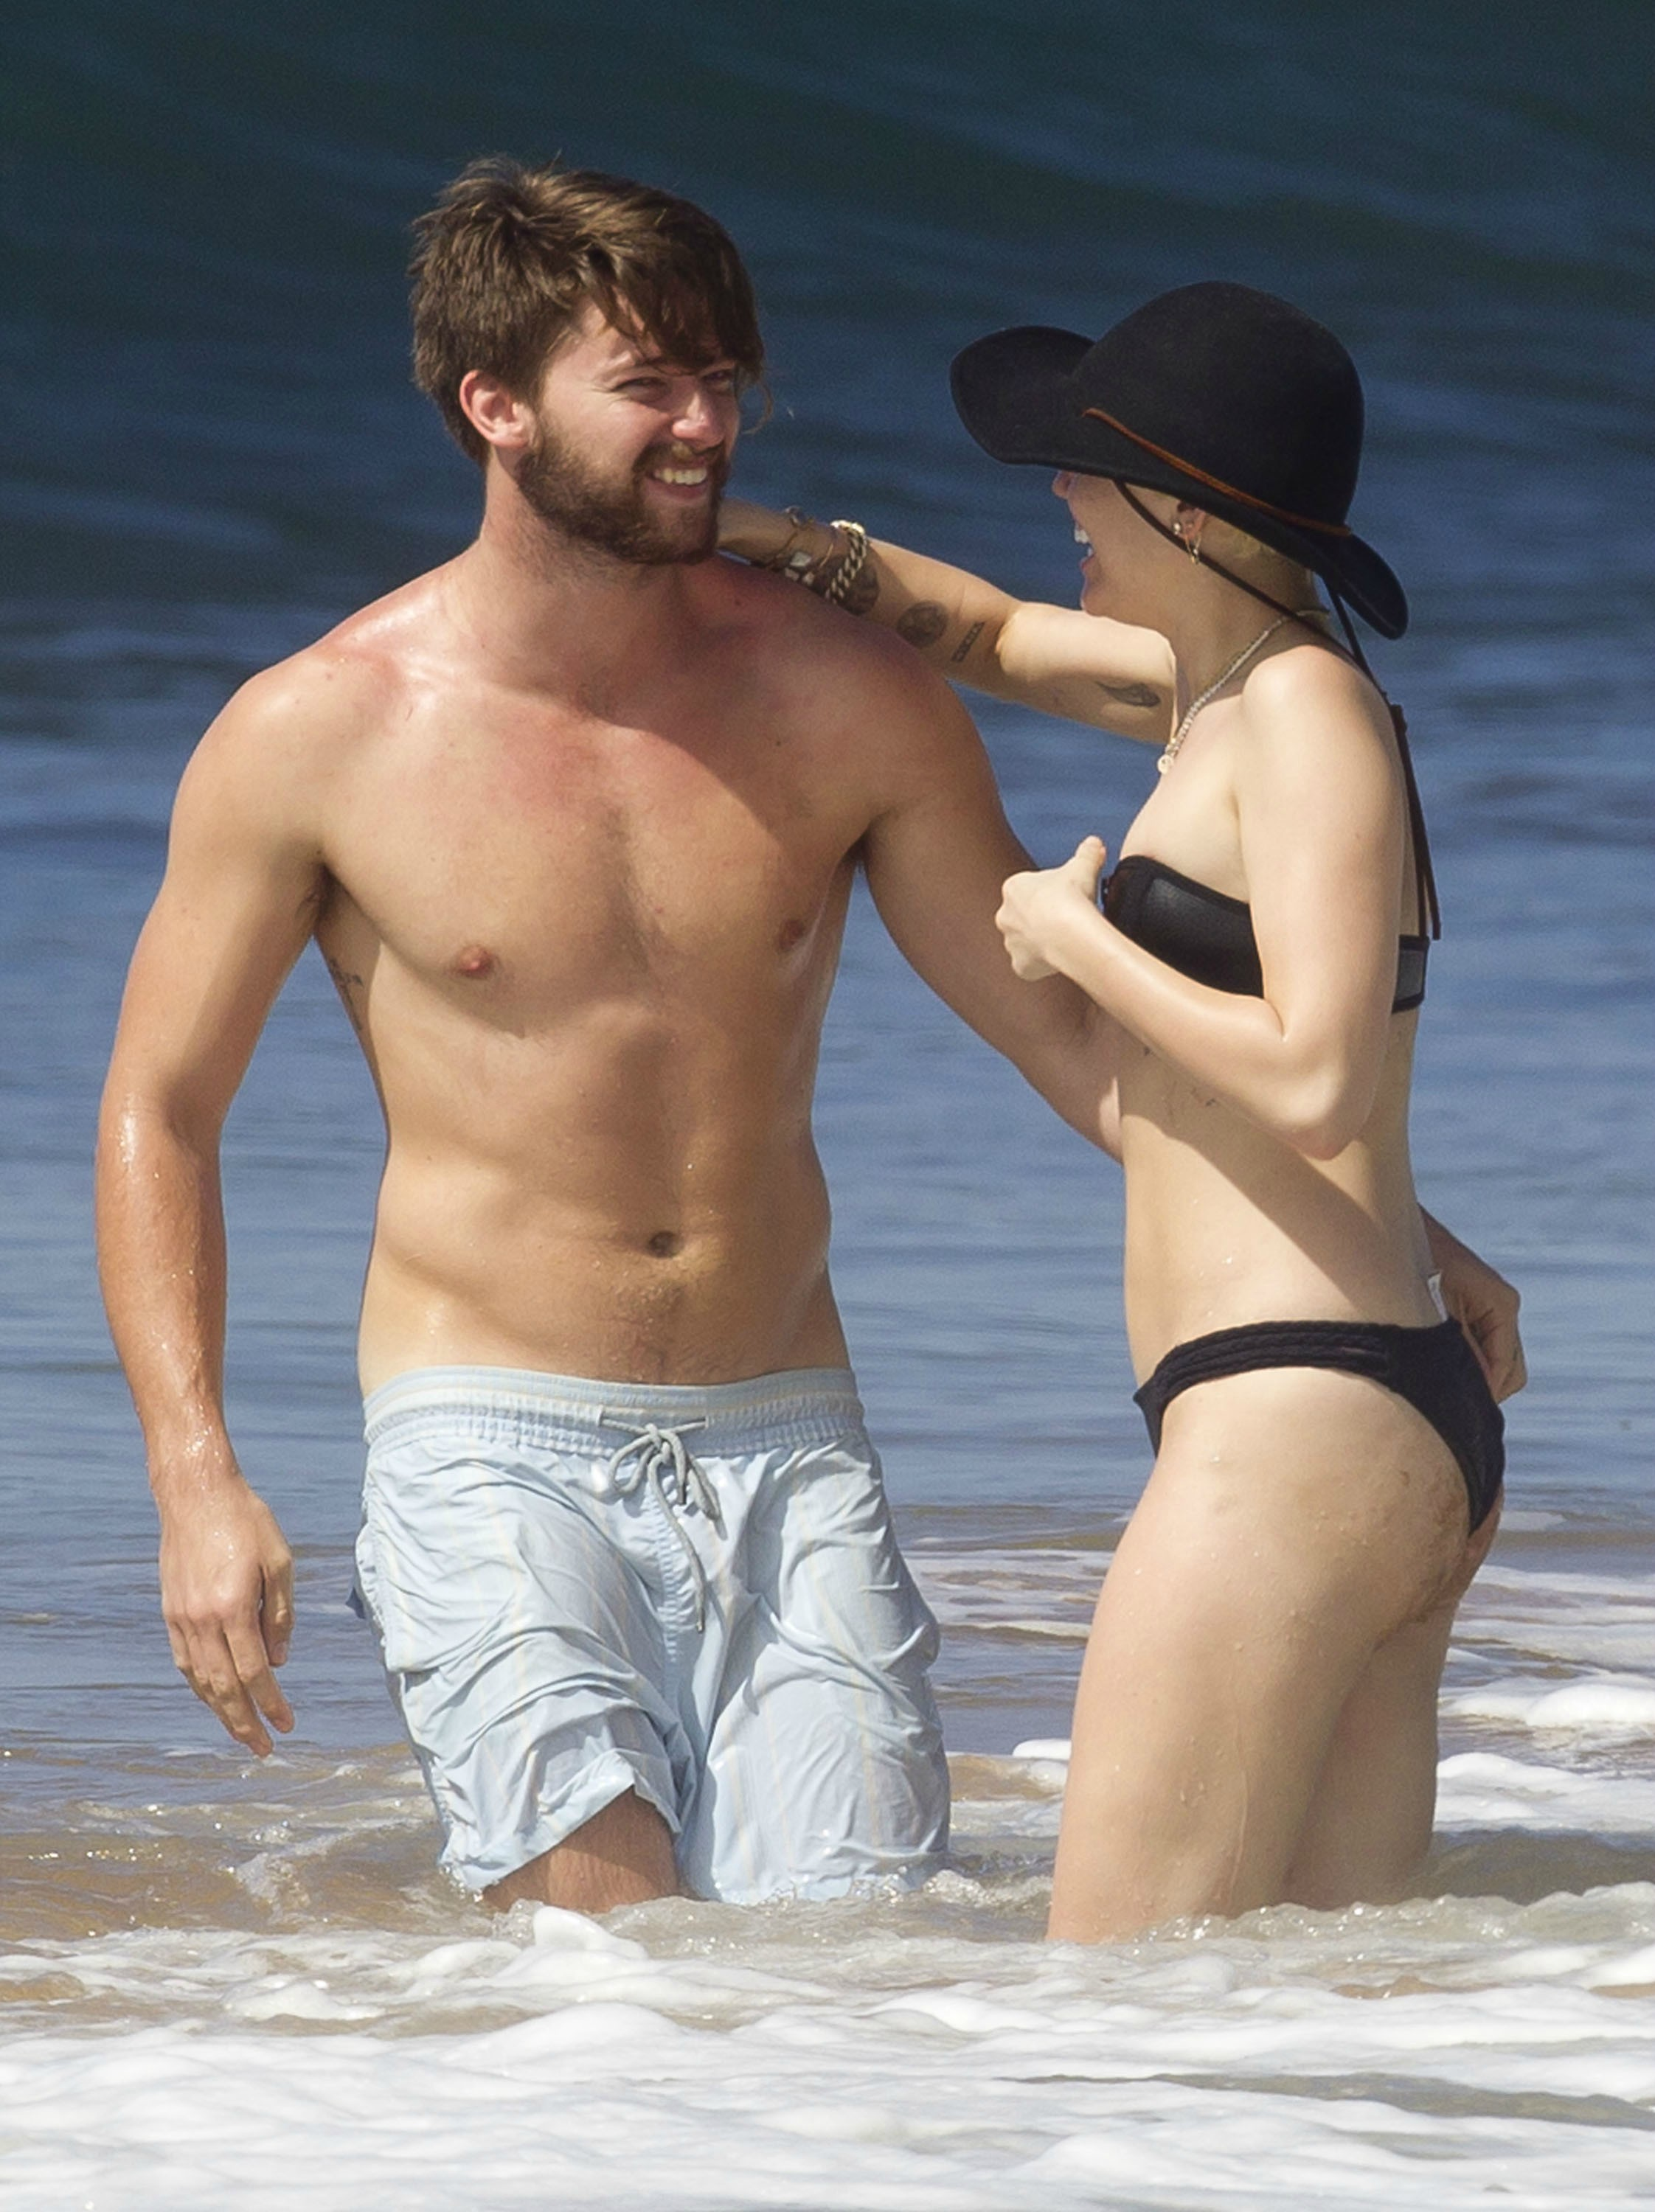 Miley cyrus topless beach